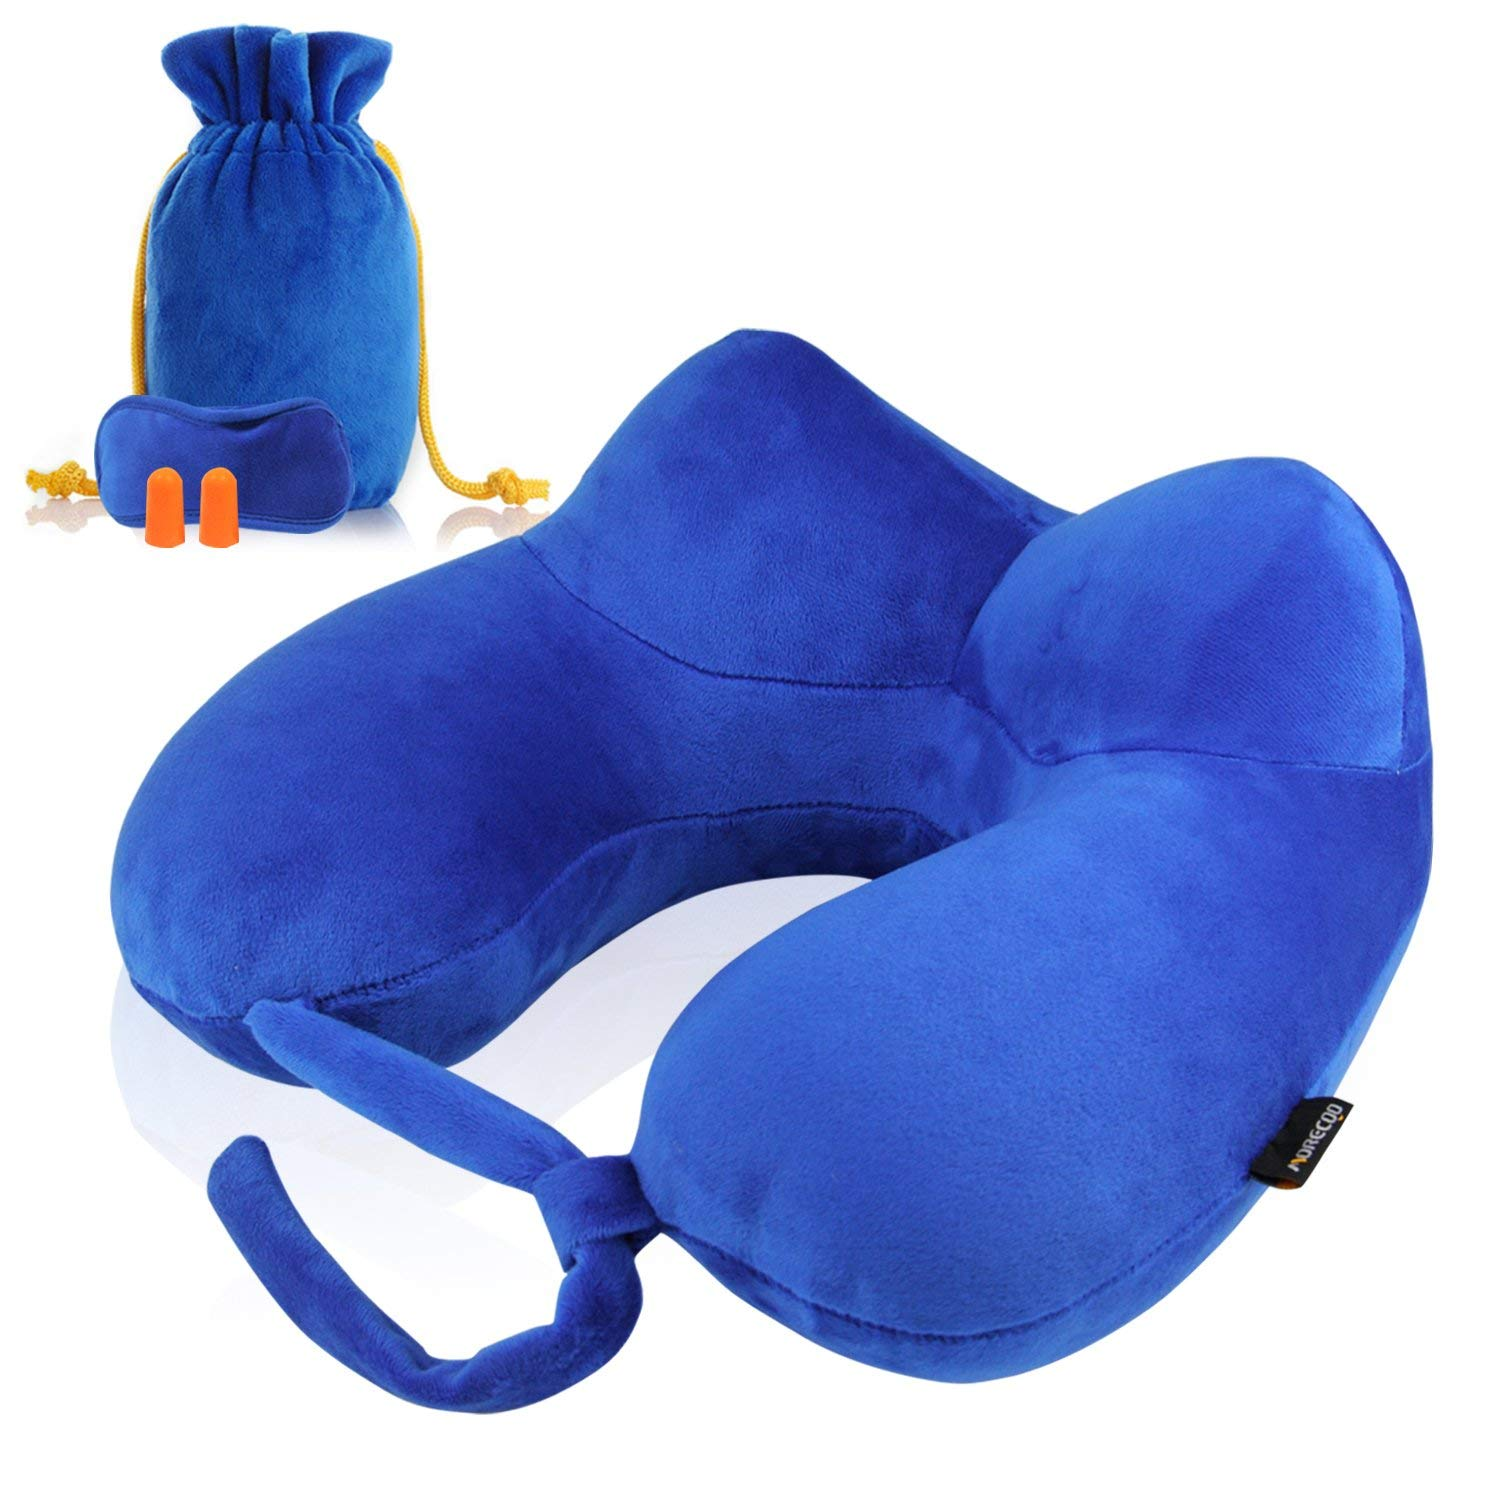 Inflatable U Shaped Portable Neck Pillow Set For Sale In